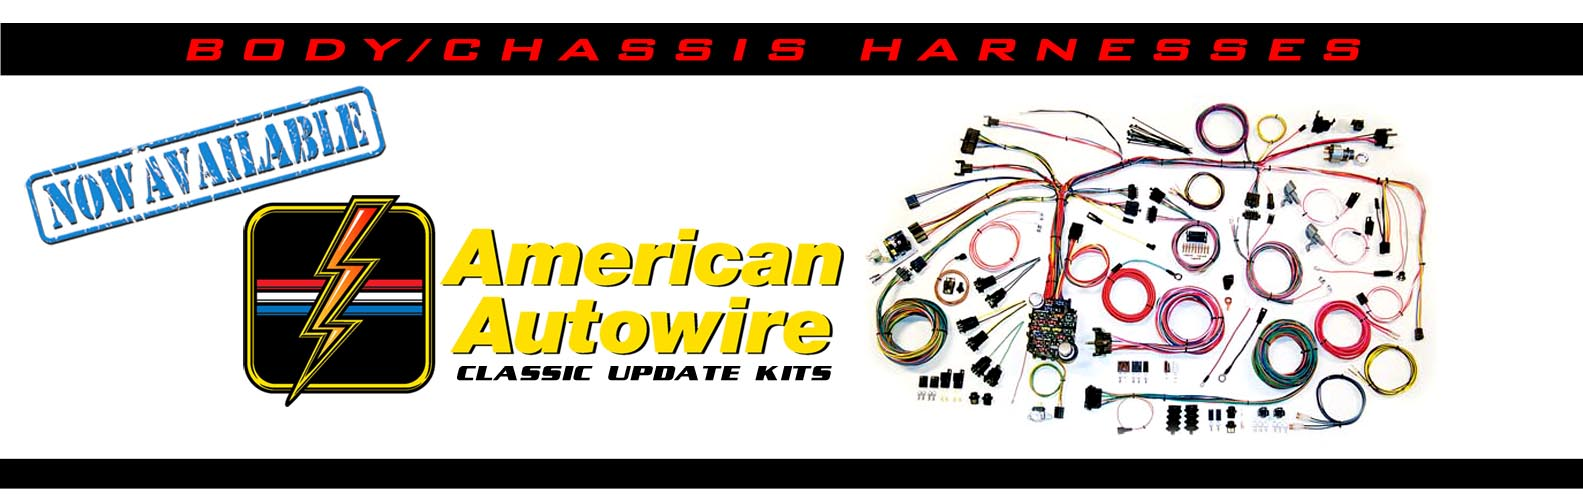 Psi Standalone Wiring Harness Ls Wirng Lsx Ac Unit Diagram For 1992 Jeep Wrangler 1